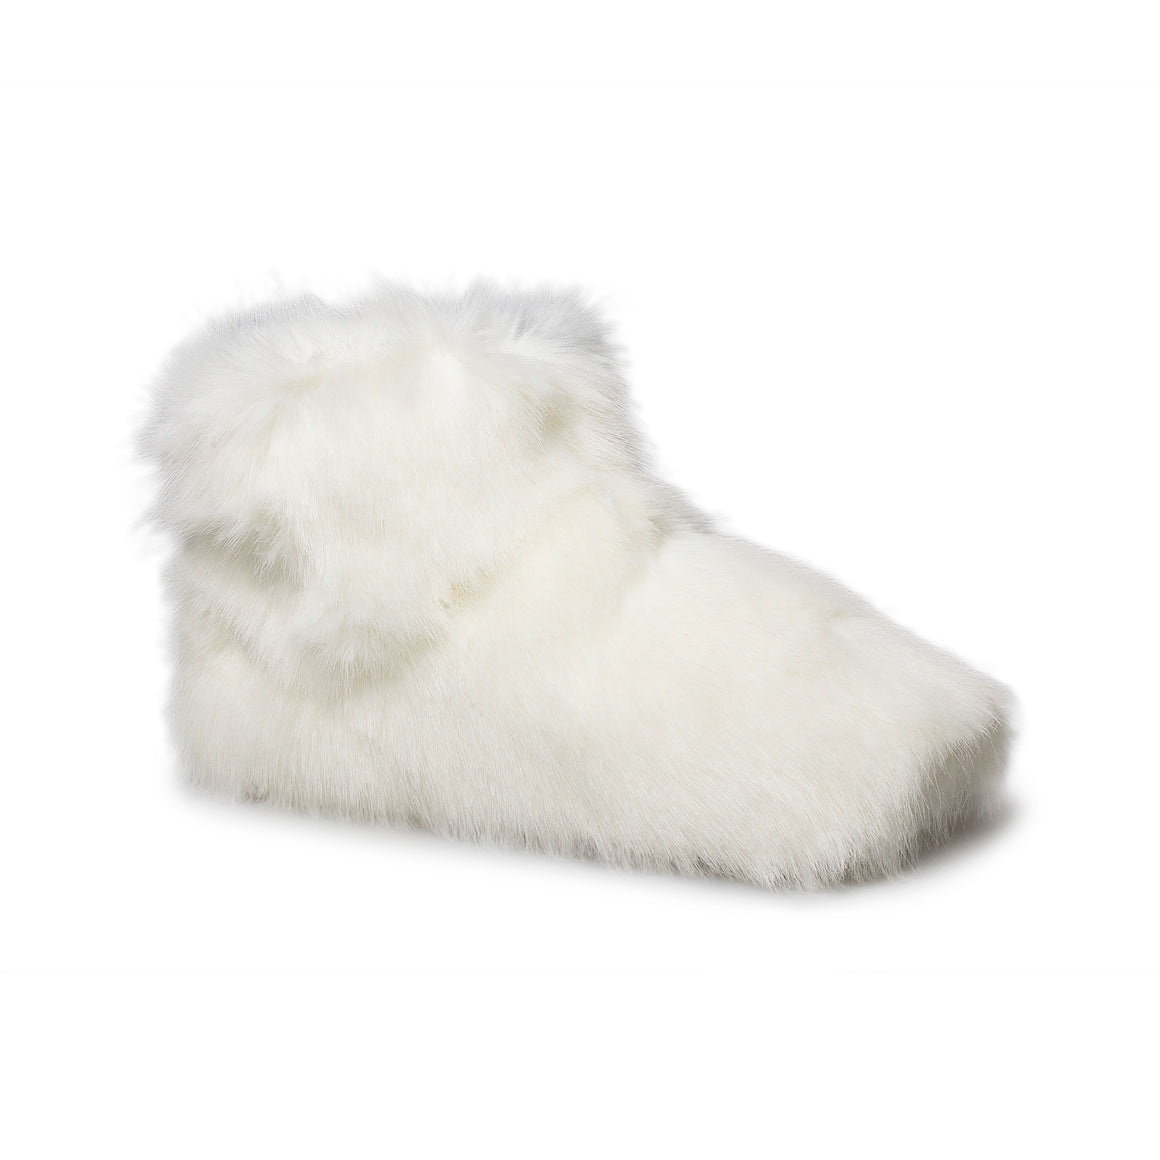 UGG Amary White Slippers - Women's